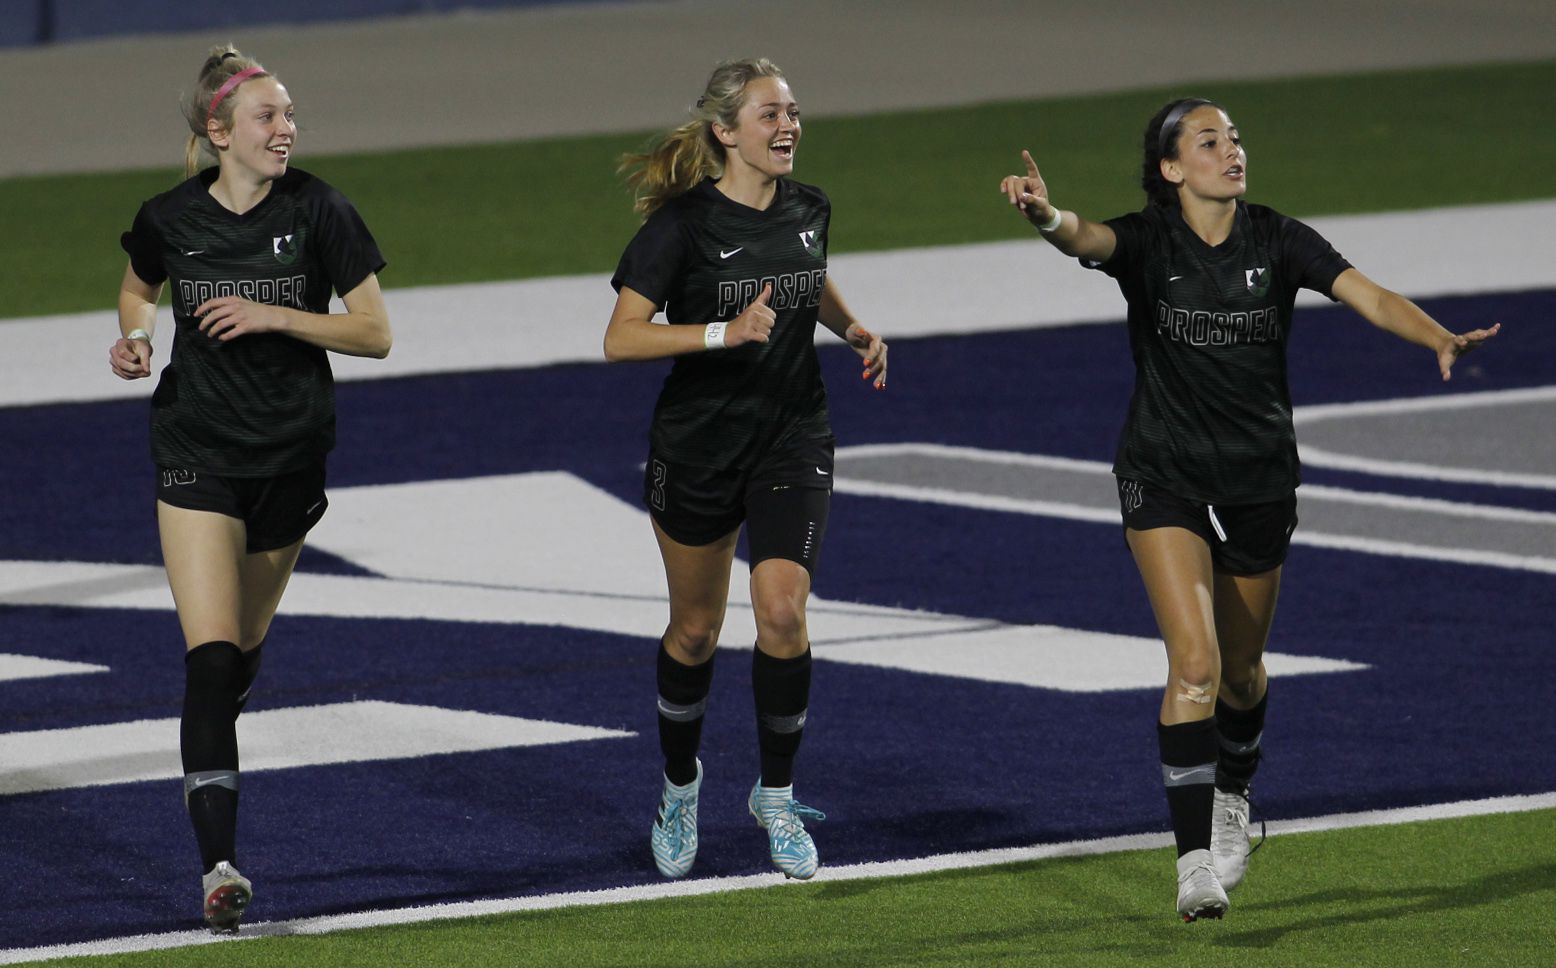 Framed by teammates Hadley Murrell (10), left, and Emma Yolinsky (11), right, Prosper forward Kaitlyn Giametta (3), center, is all smiles as the trio celebrated her goal against Coppell during first half action. The two teams played their Class 6A bi-district girls soccer playoff game at McKinney ISD Stadium in McKinney on March 26, 2021. (Steve Hamm/ Special Contributor)